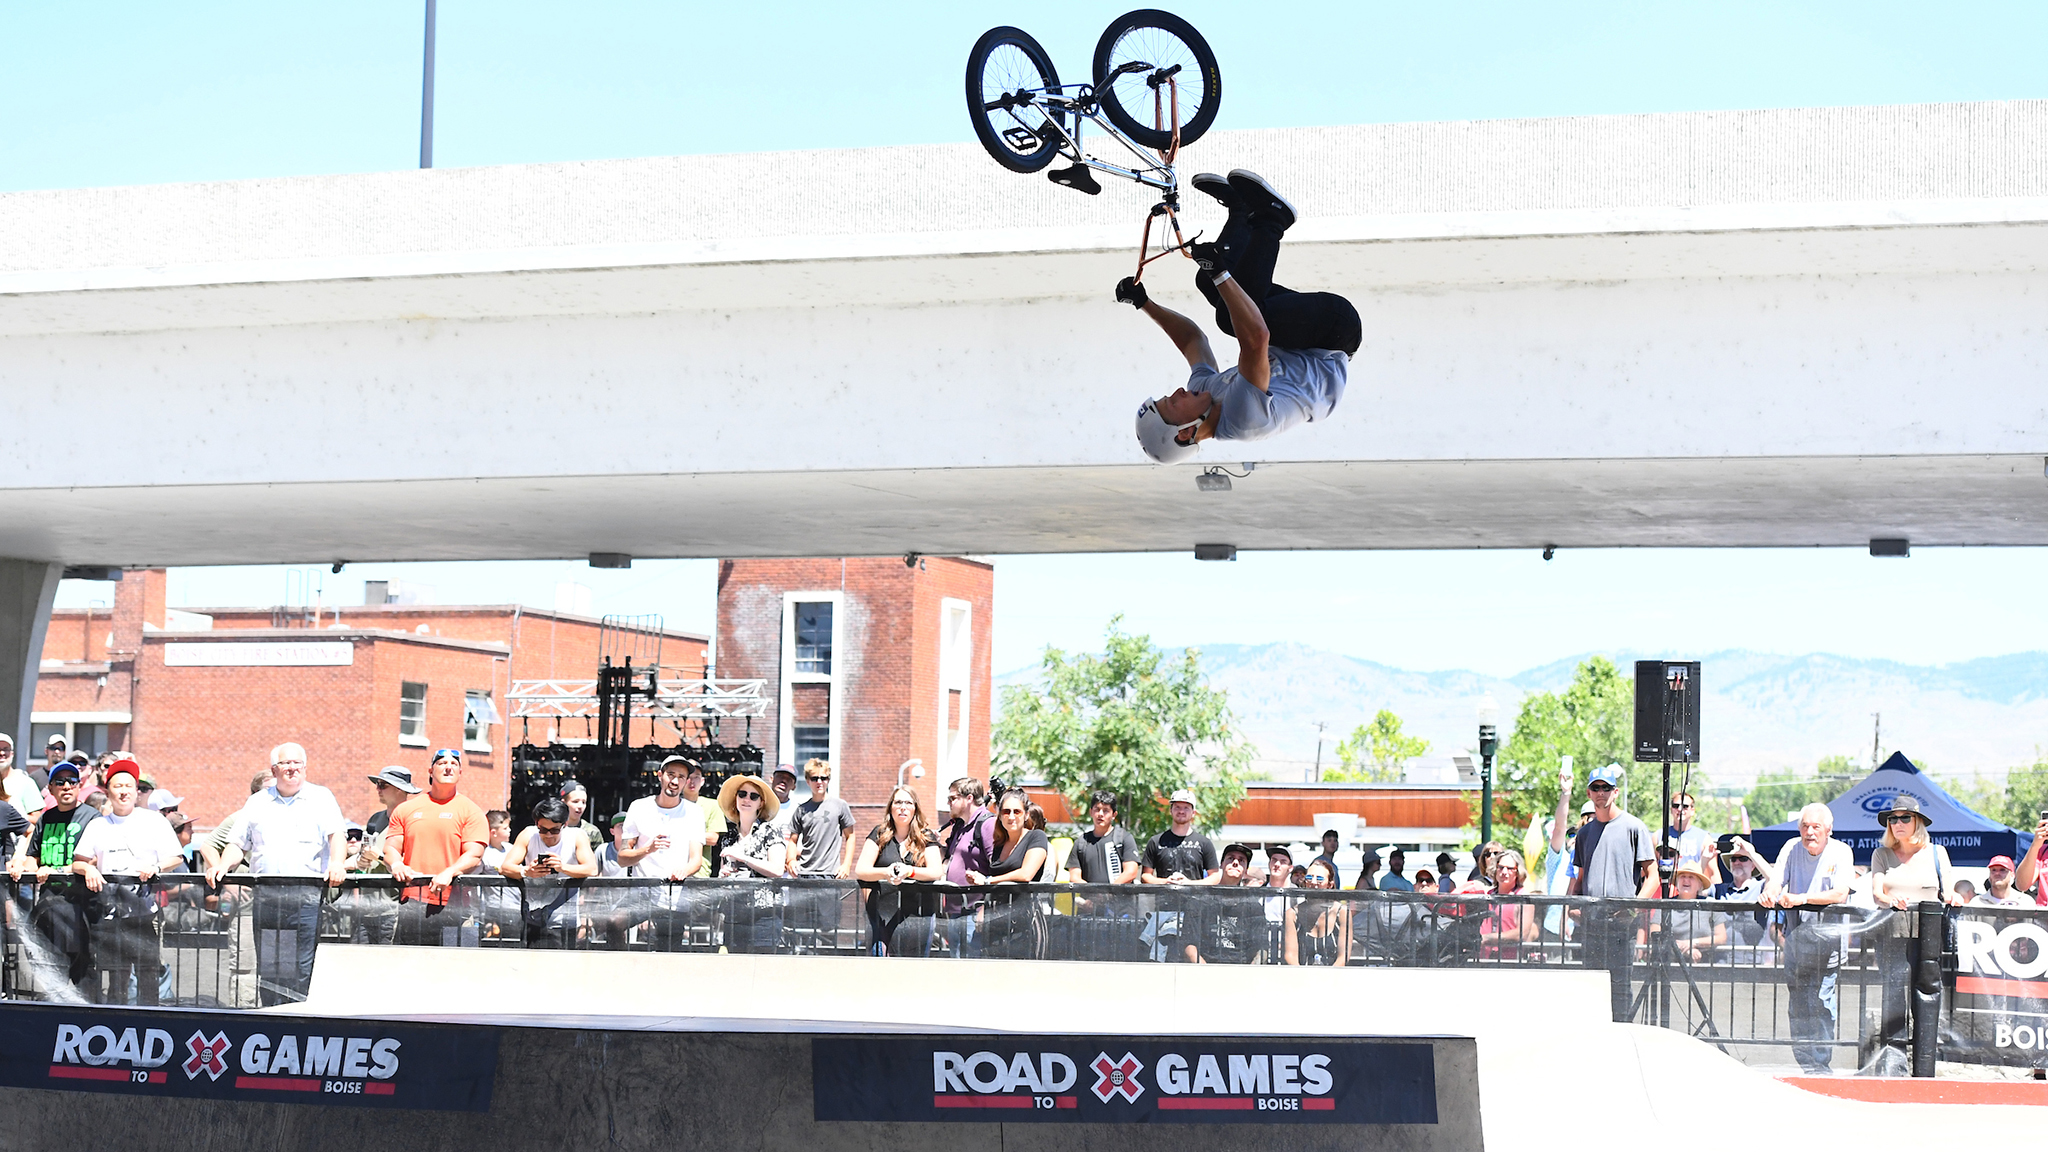 16-year-old Marcus Christopher just earned his first invite to X Games Minneapolis 2019.